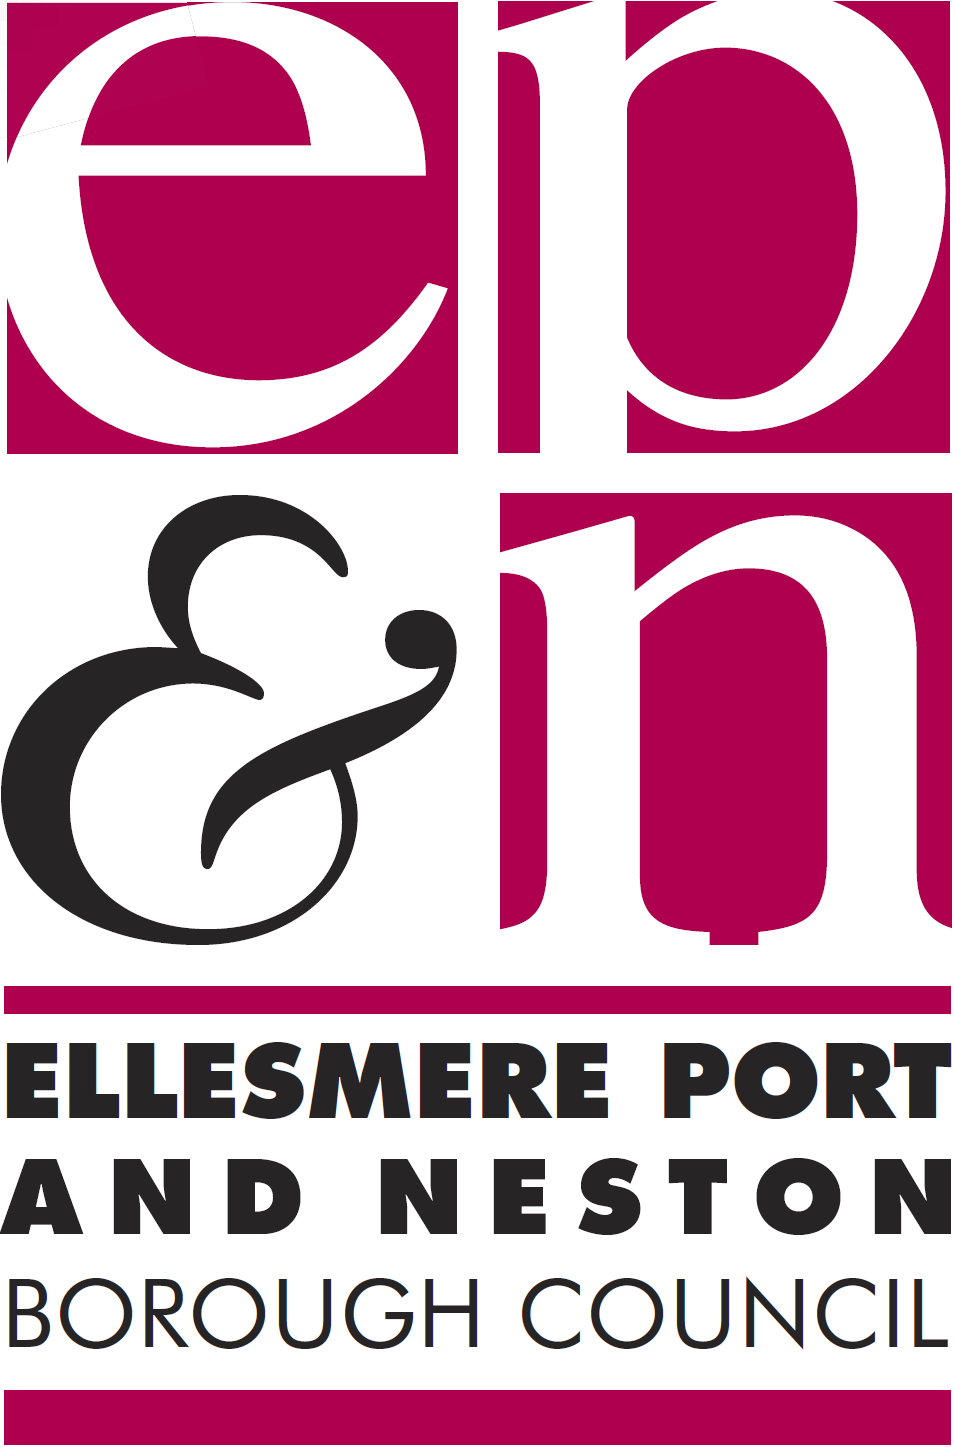 Ellesmere Port and Neston Borough Council